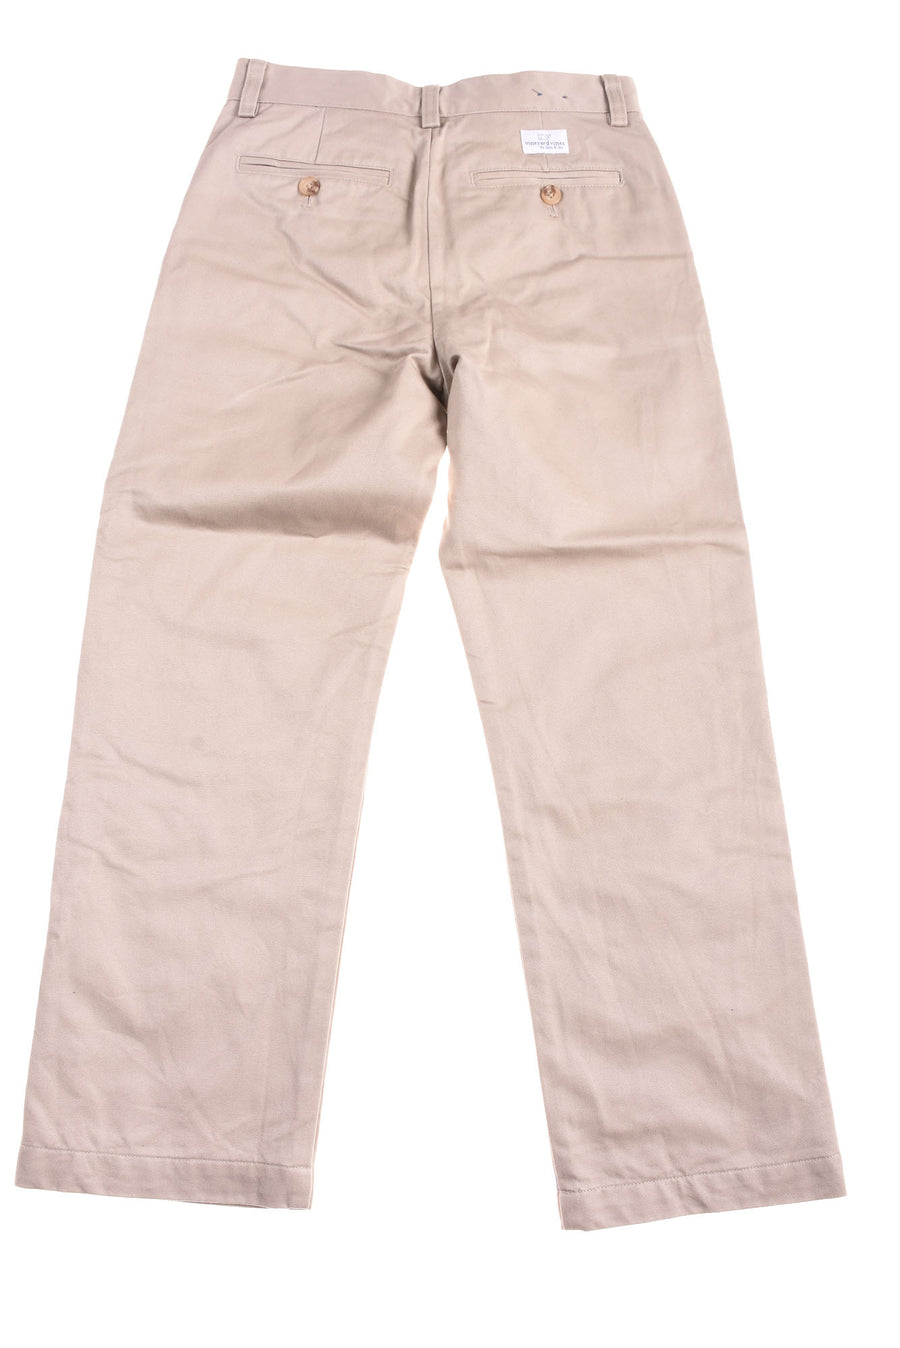 USED Vineyard Vines Boy's Slacks 10 Tan